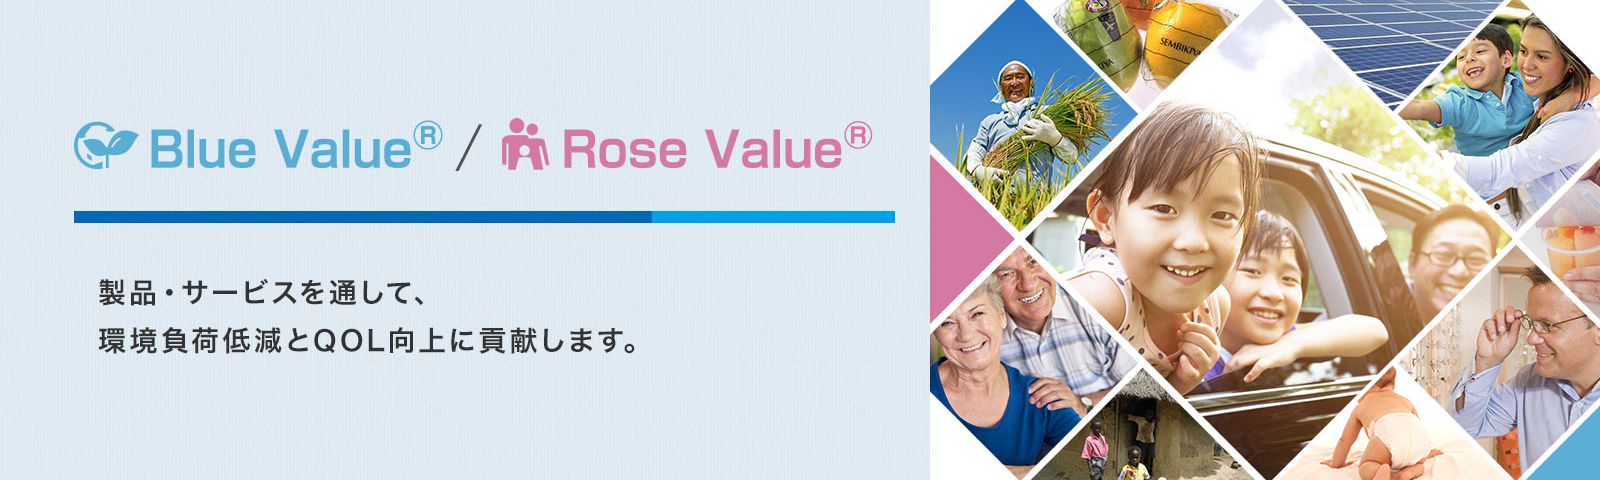 Blue Value<sup>®</sup> / Rose Value<sup>®</sup>製品